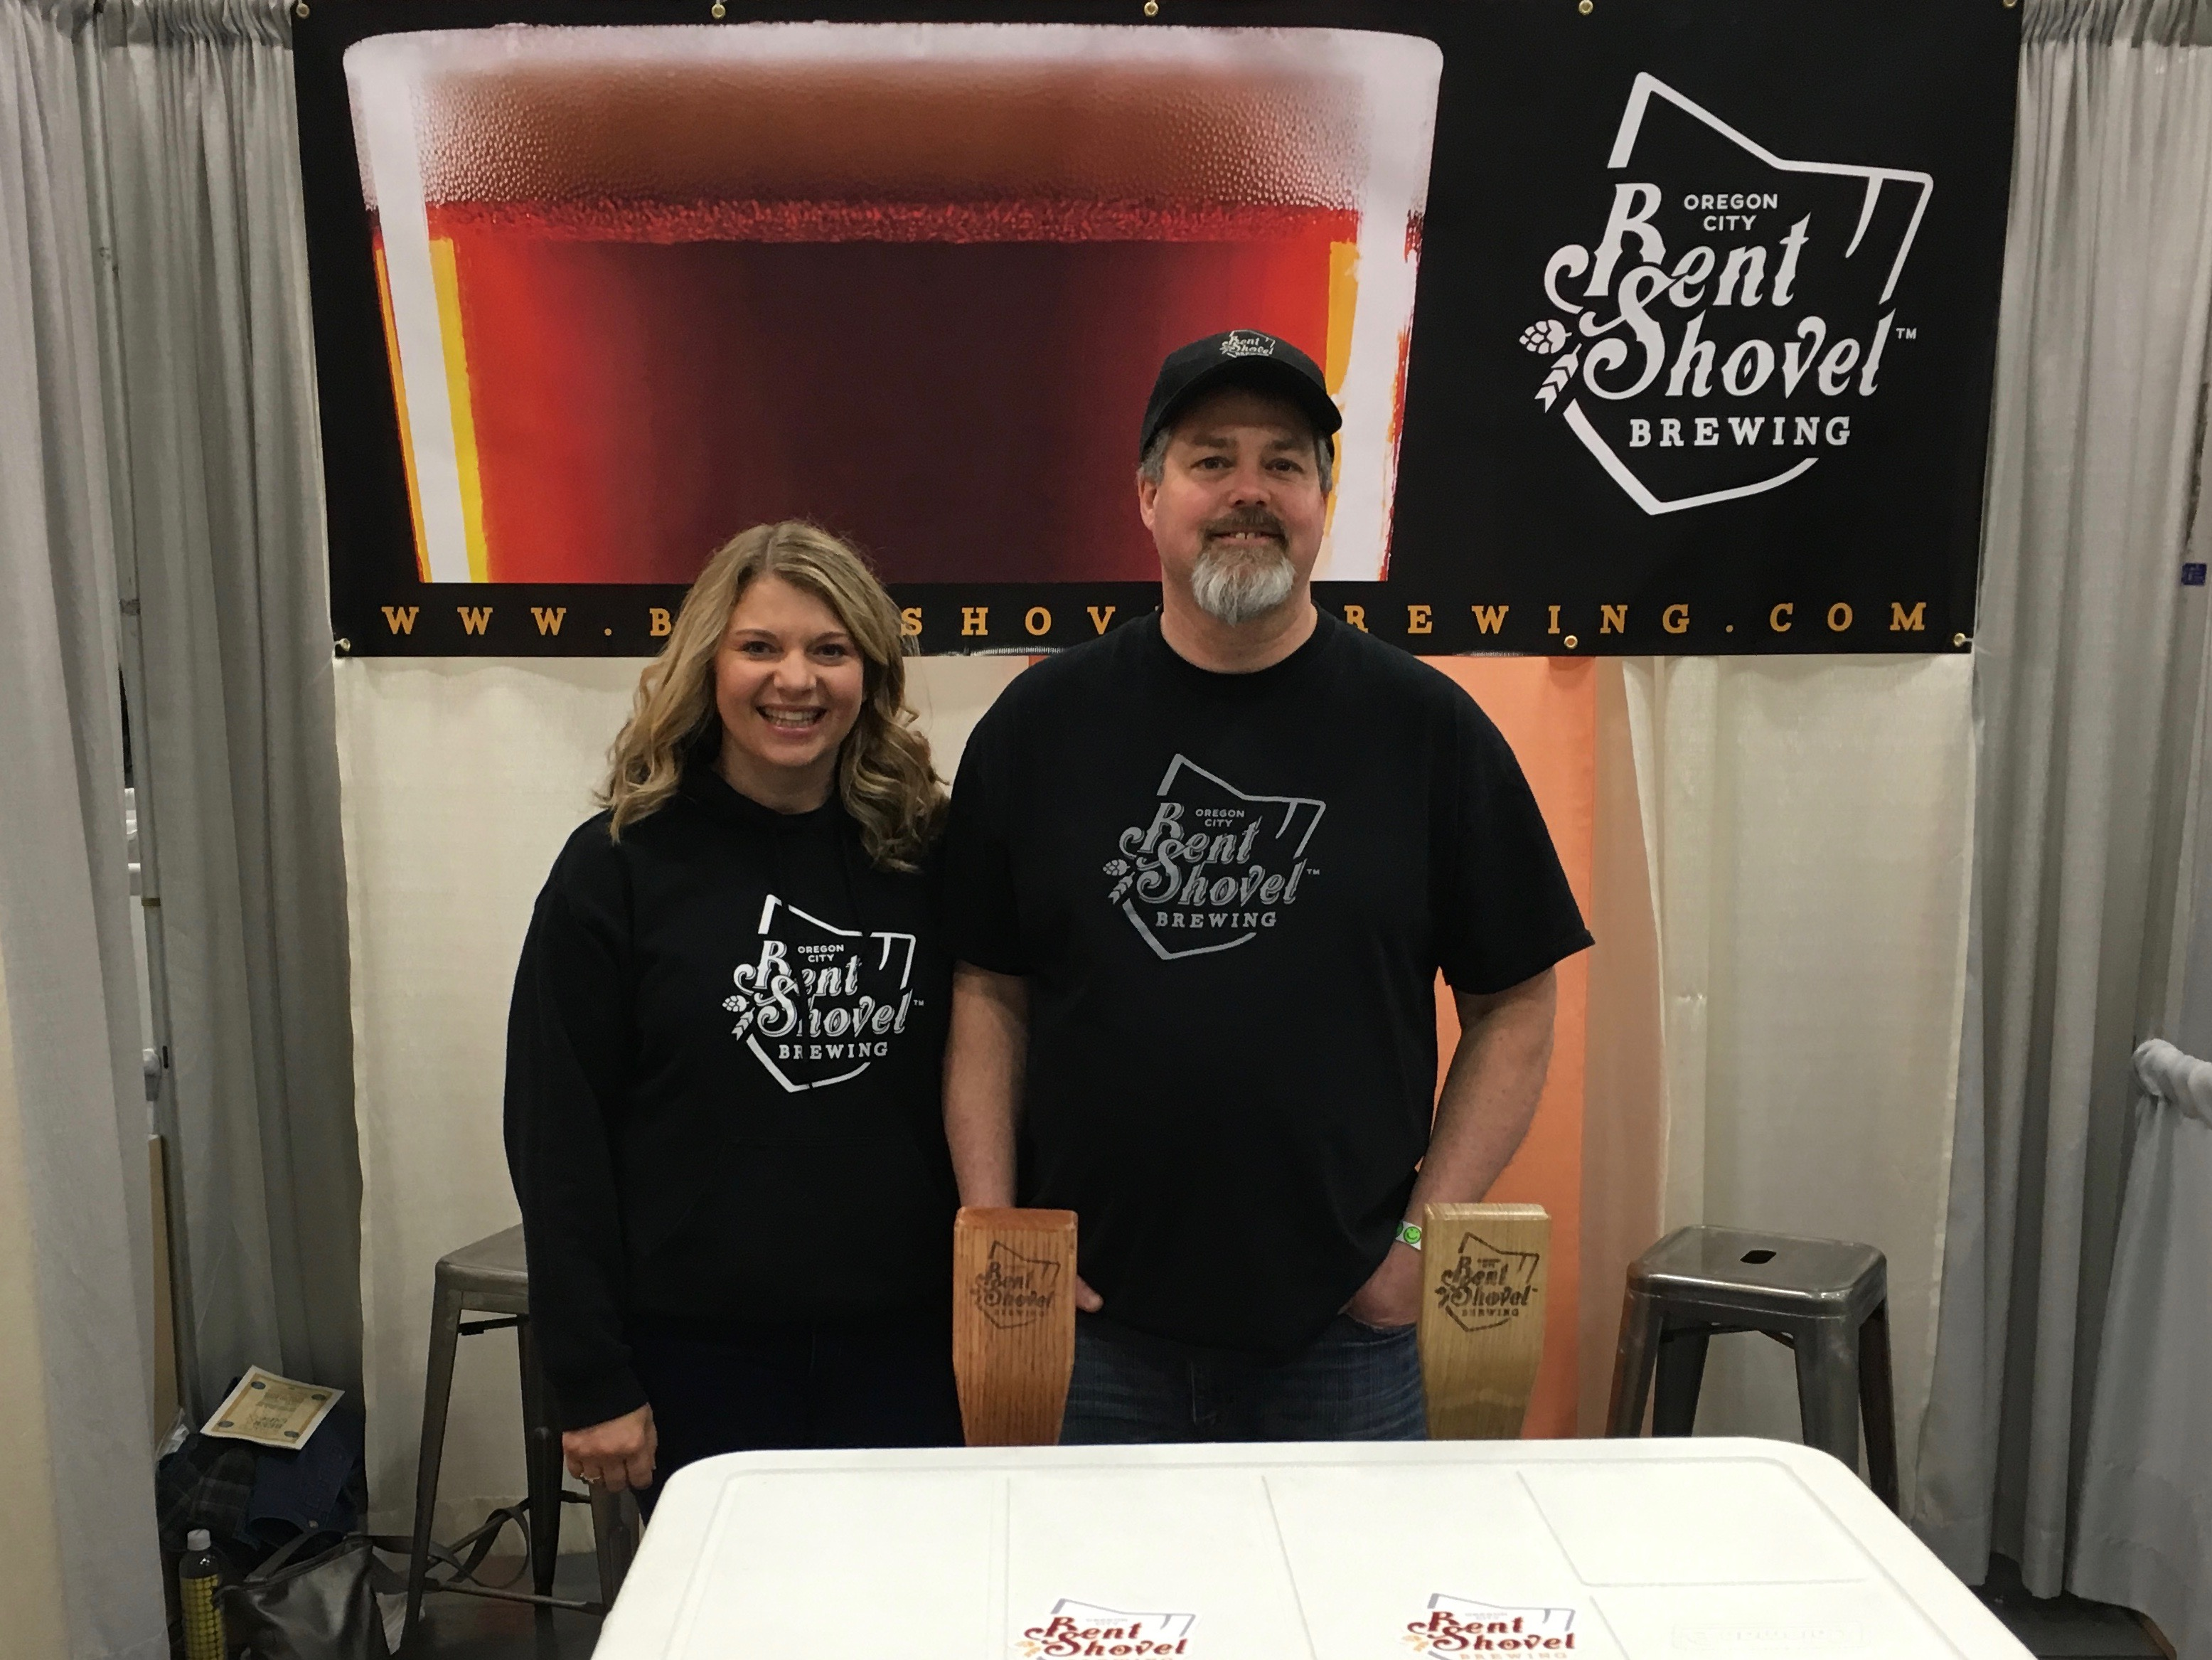 Shelly and Rick Strauss of Bent Shovel at the 2016 Spring Beer and Wine Fest.